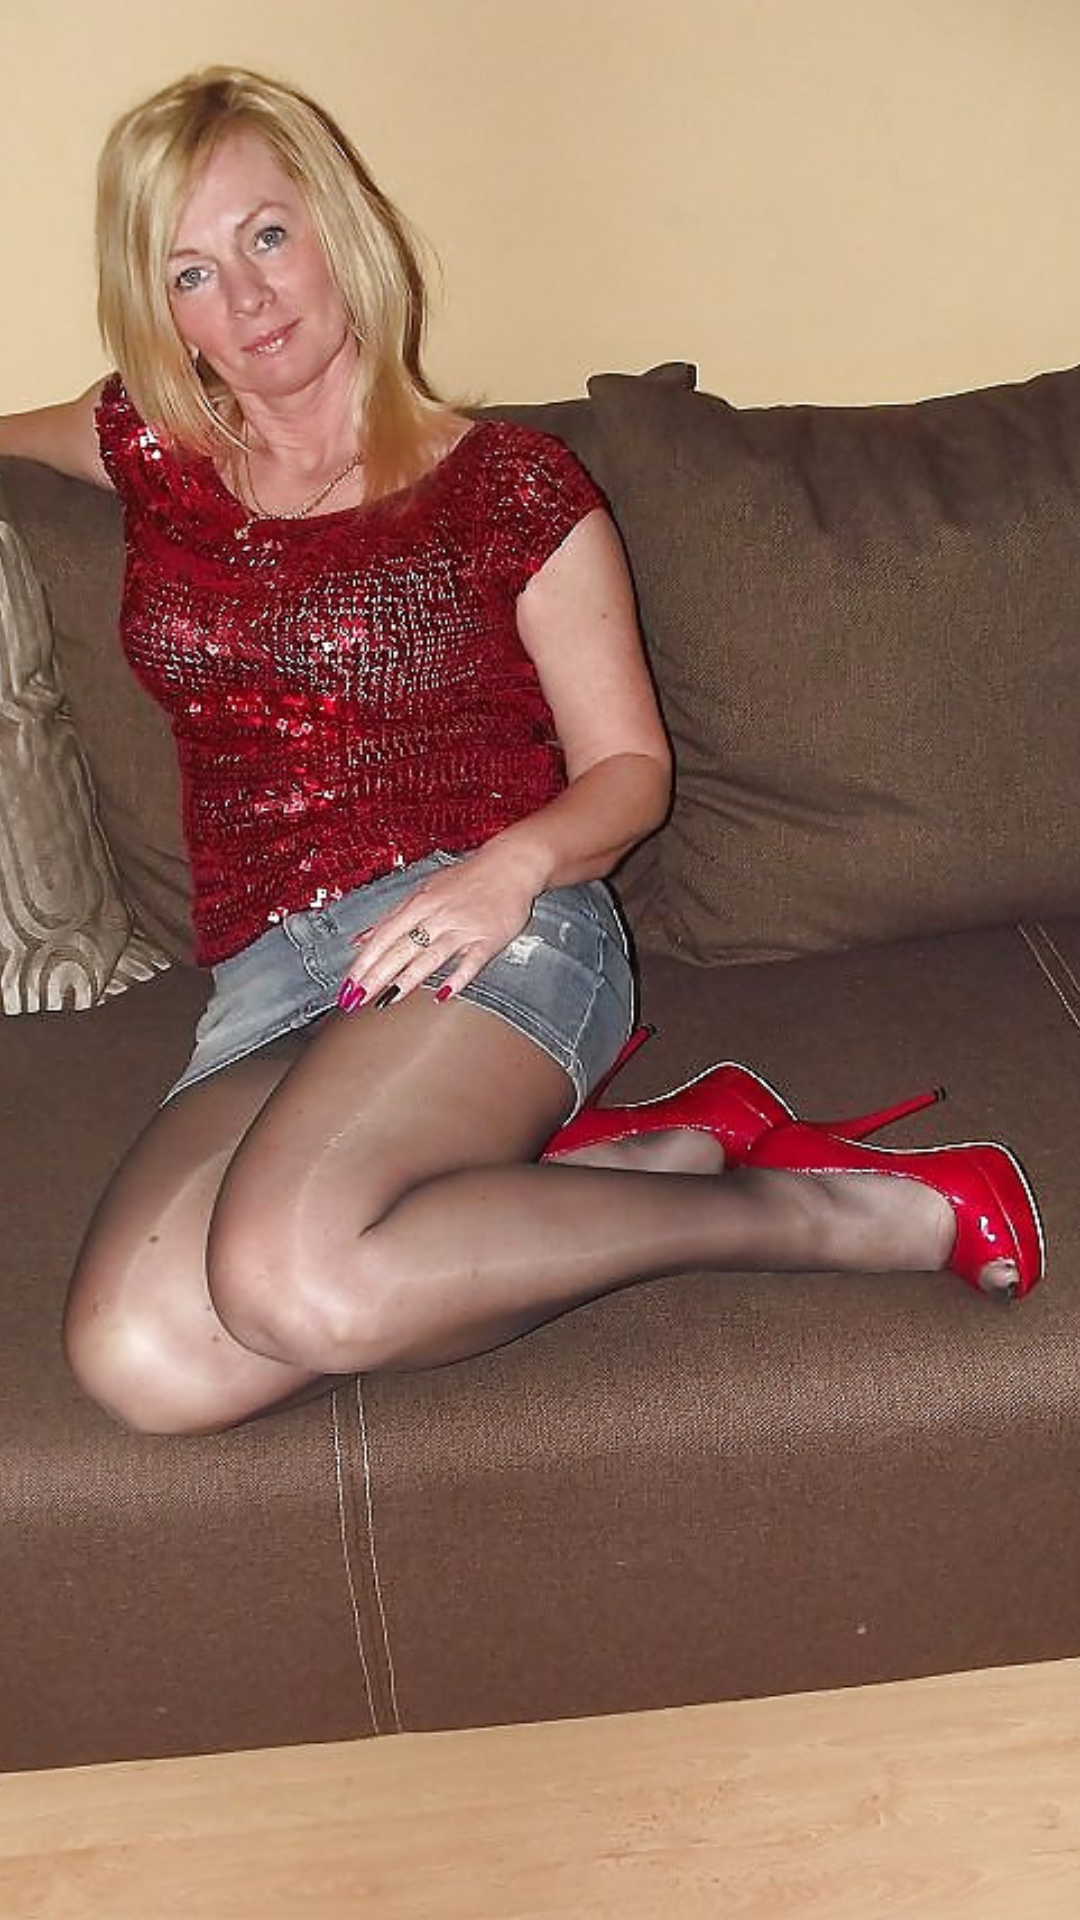 Free Mature Porn: Pantyhose Picture Galleries - HQ Oldies